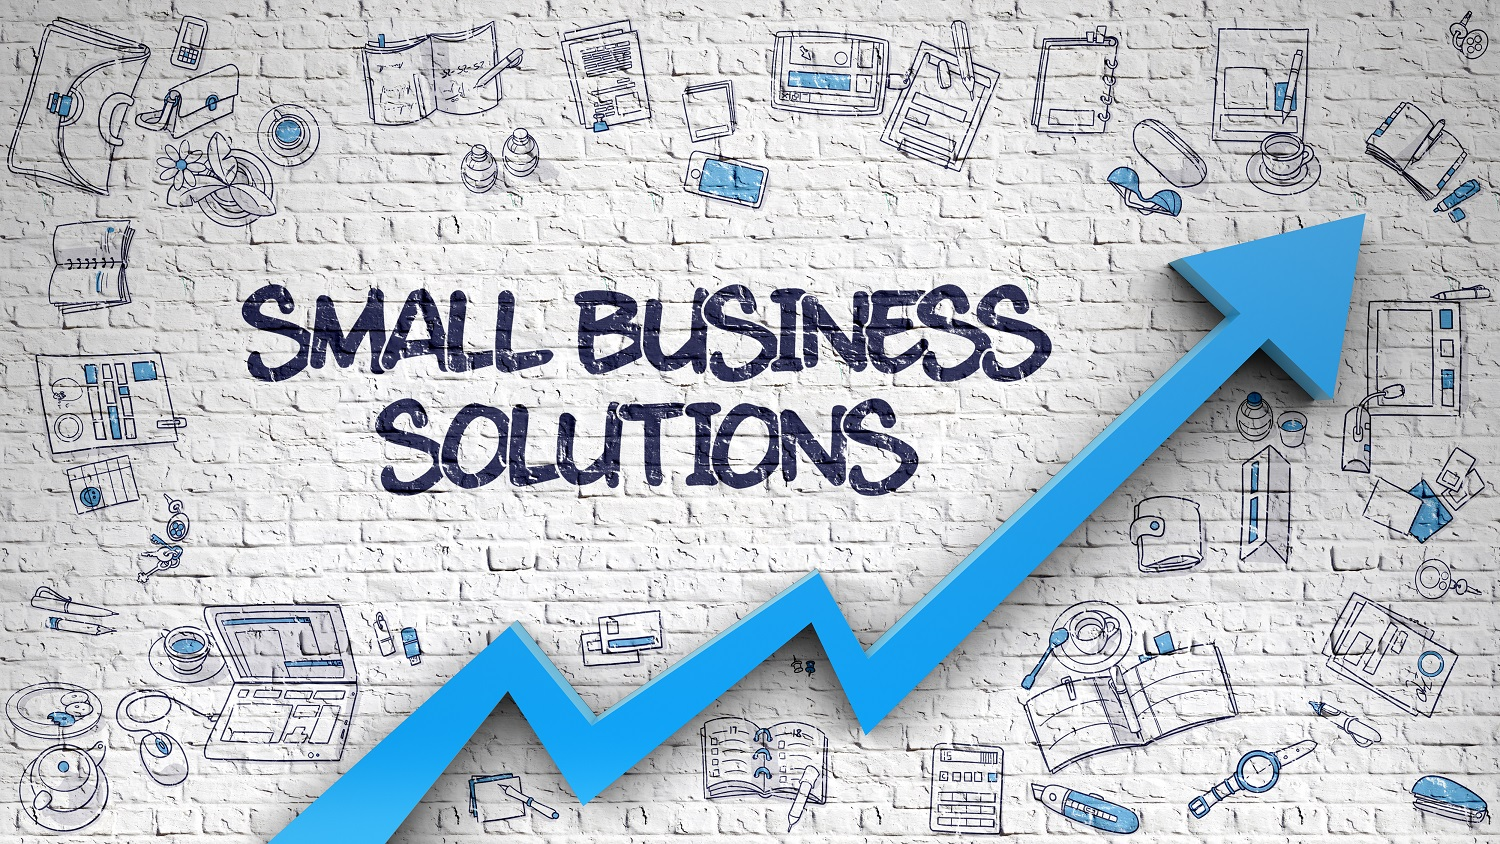 Investment Tips for Small Businesses